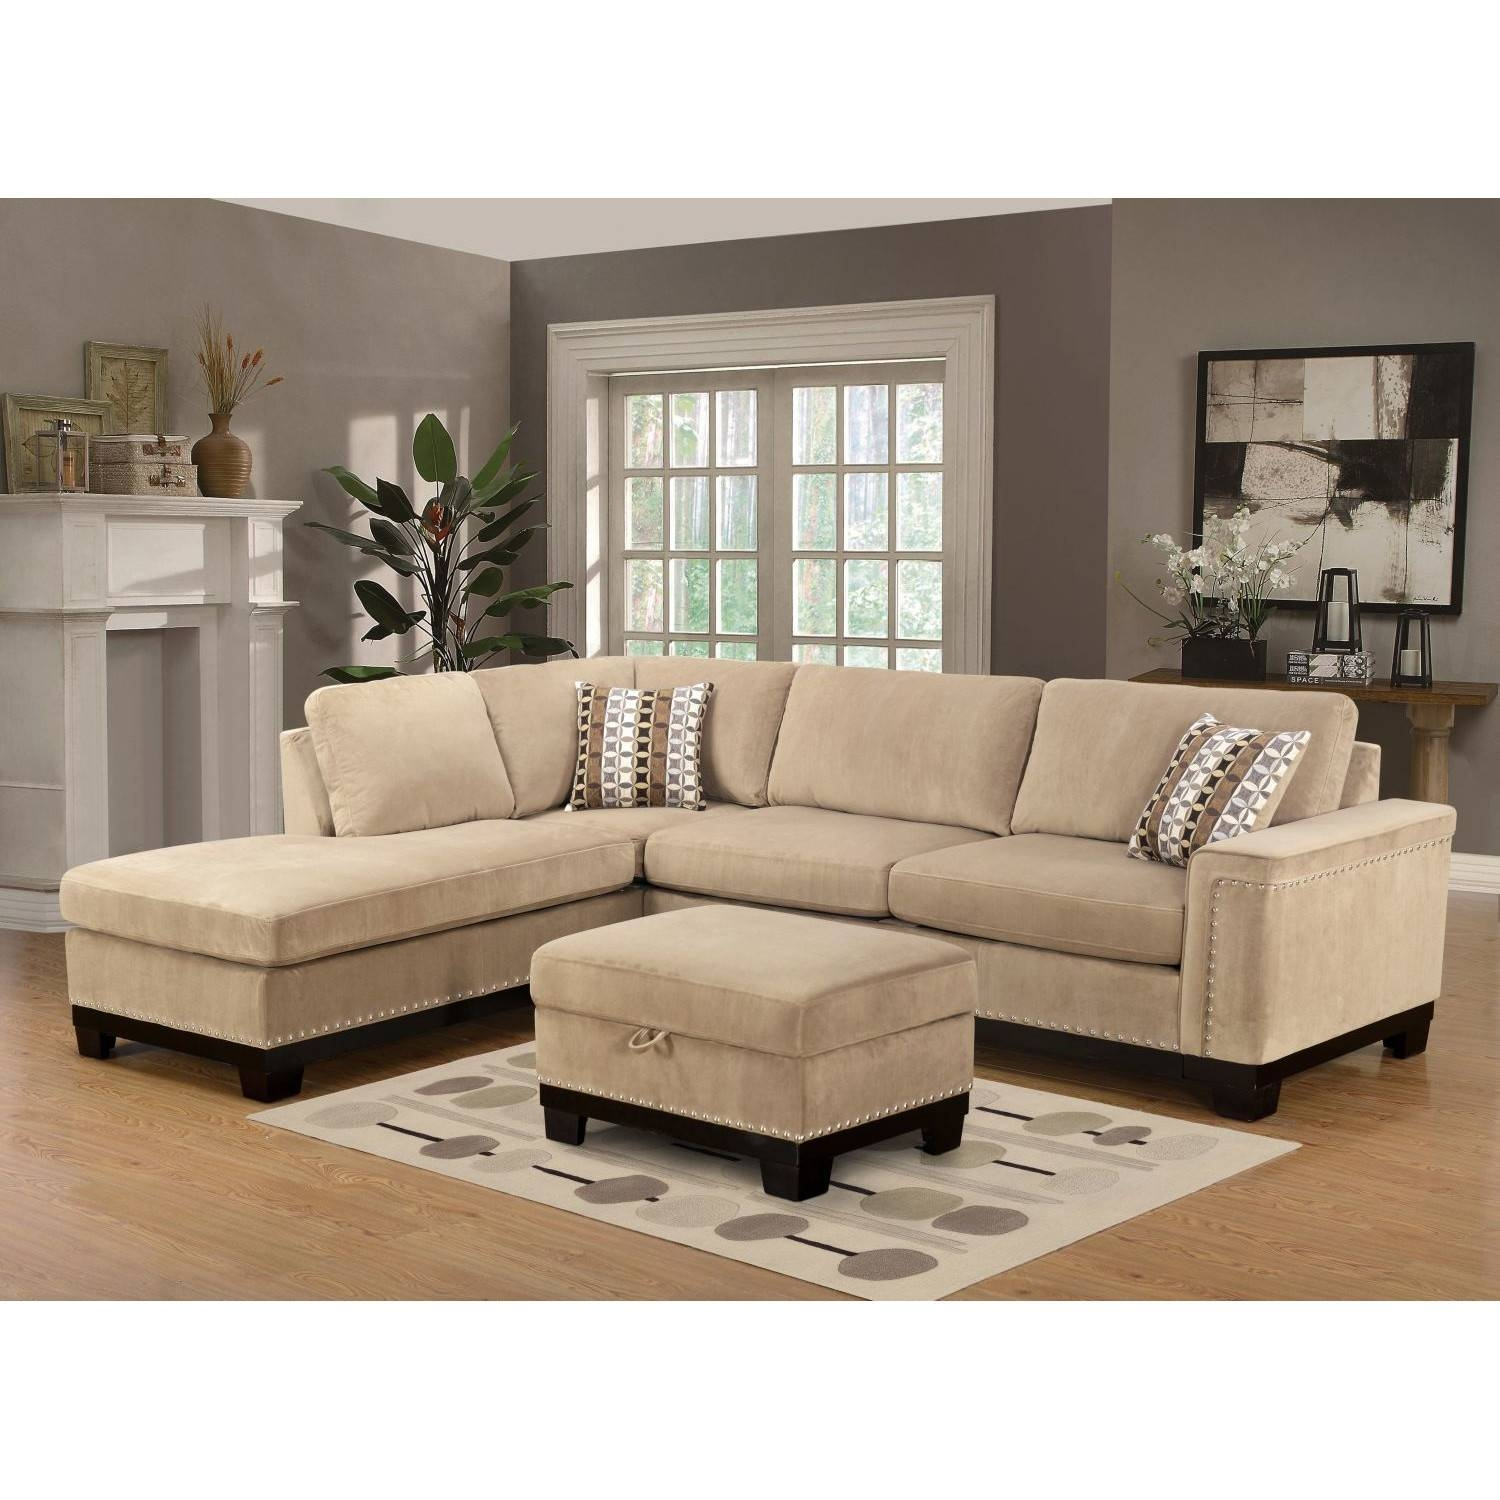 Furniture: Comfy Design Of Oversized Couch For Charming Living intended for Comfy Sectional Sofa (Image 12 of 30)